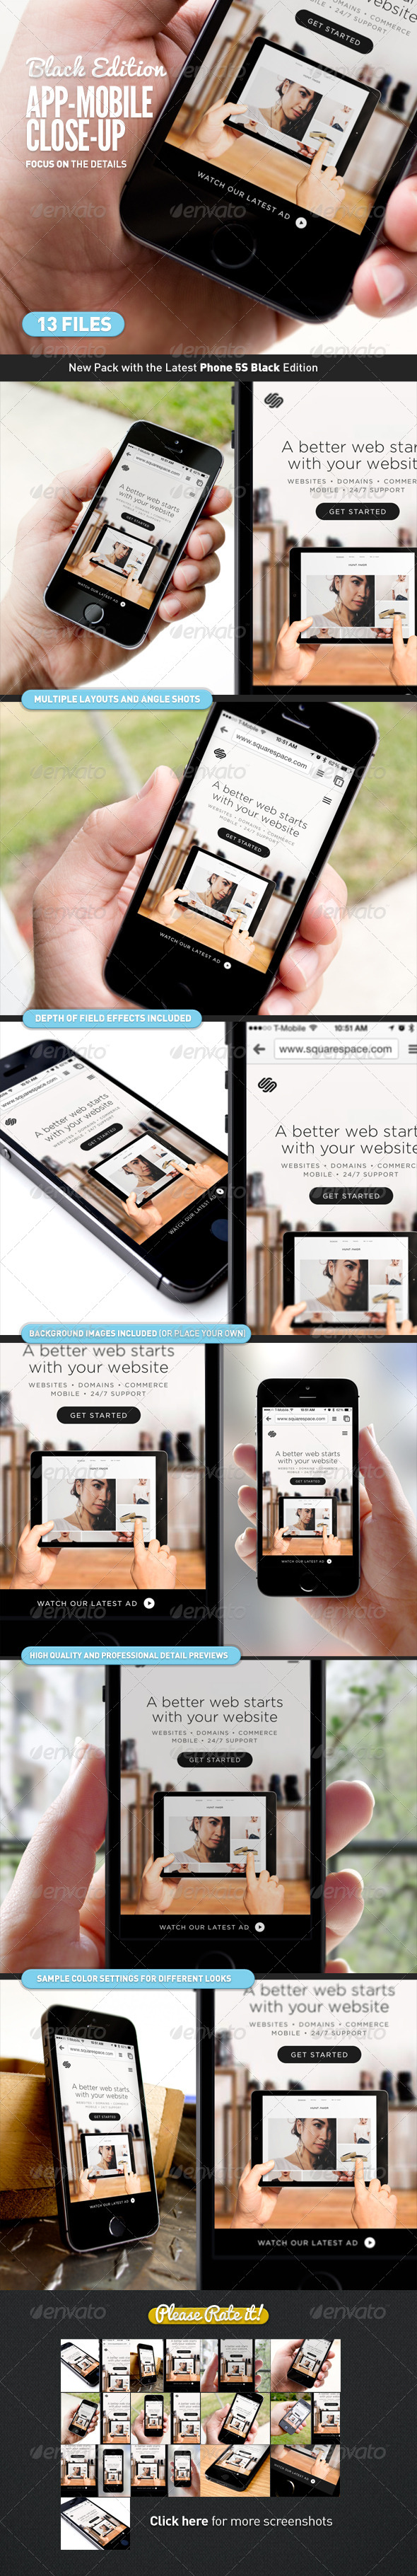 GraphicRiver App UI Close-Up Mock-Up 5s Black 7676603